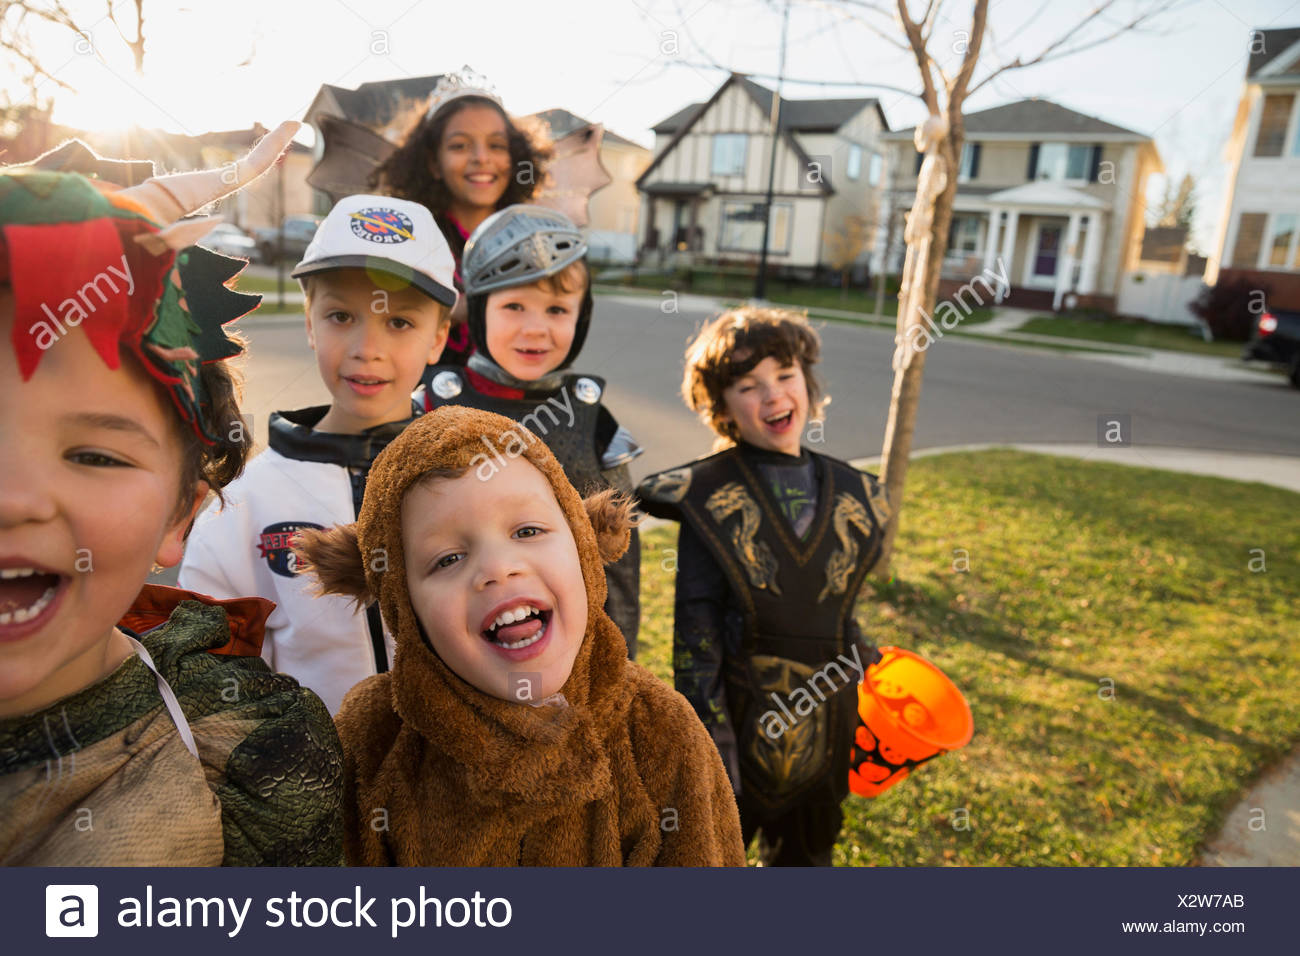 Portrait enthusiastic kids in Halloween costumes - Stock Image